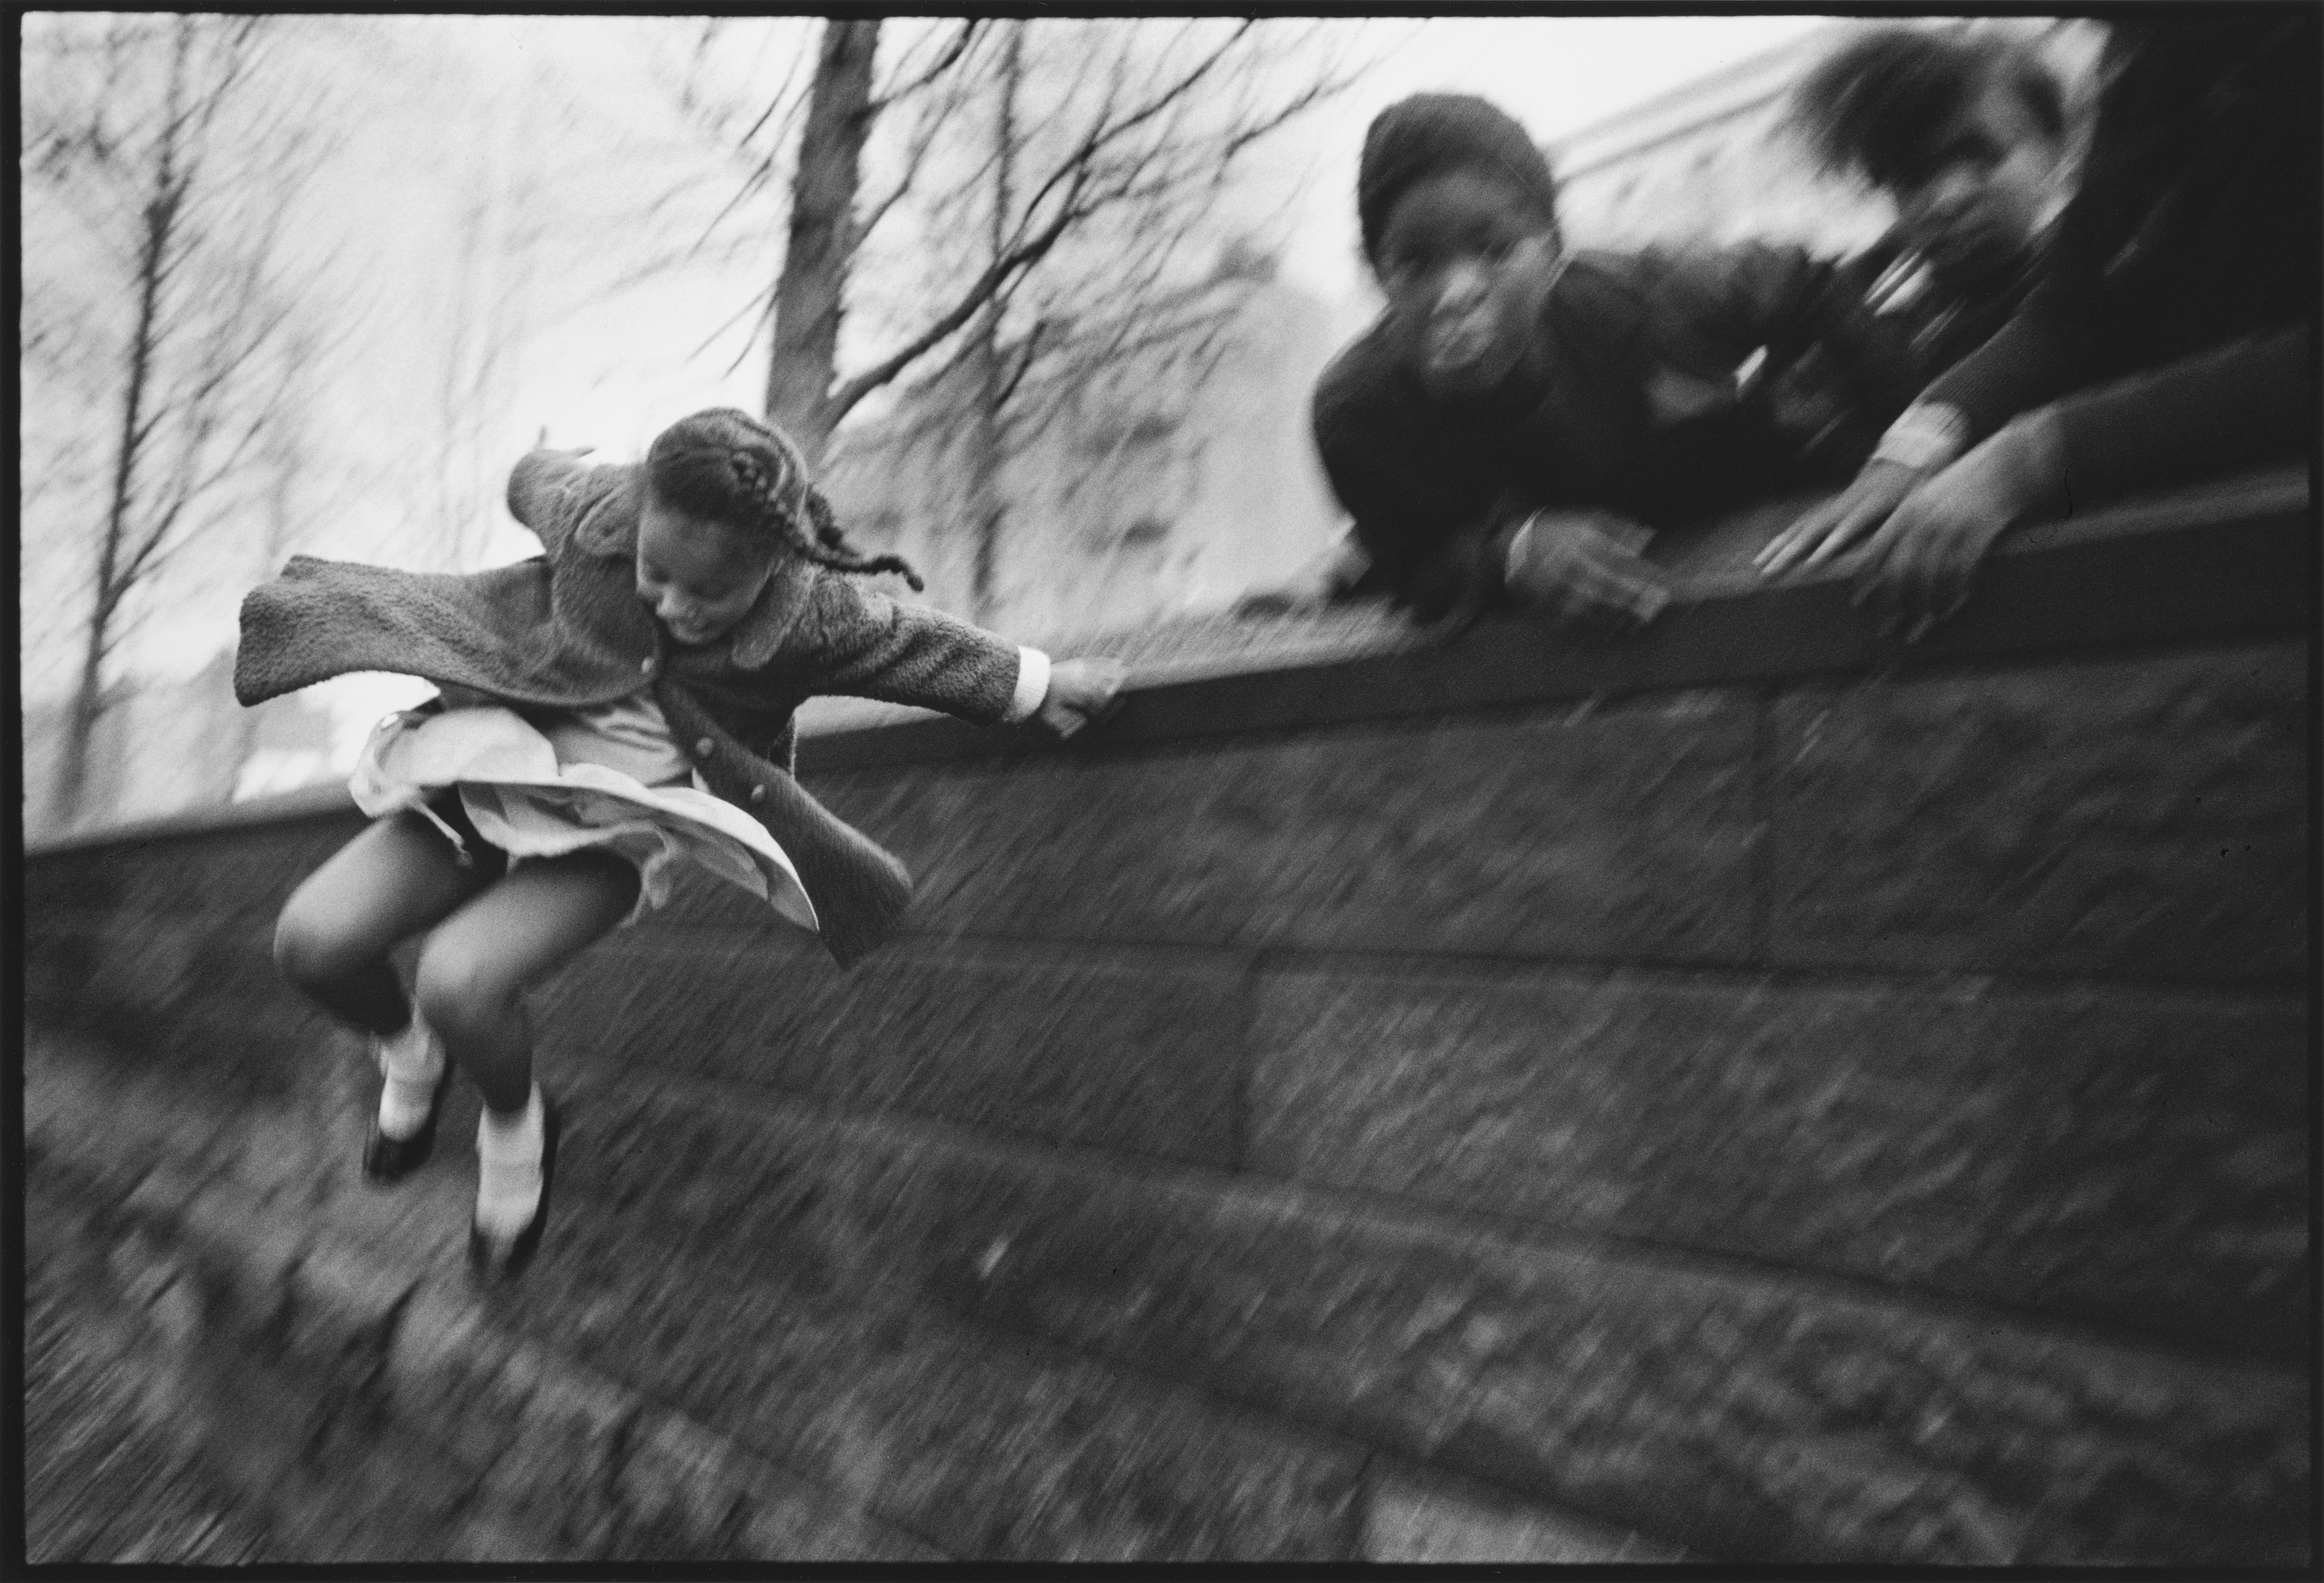 Central Park, New York City in 1967. Photo by Mary Ellen Mark